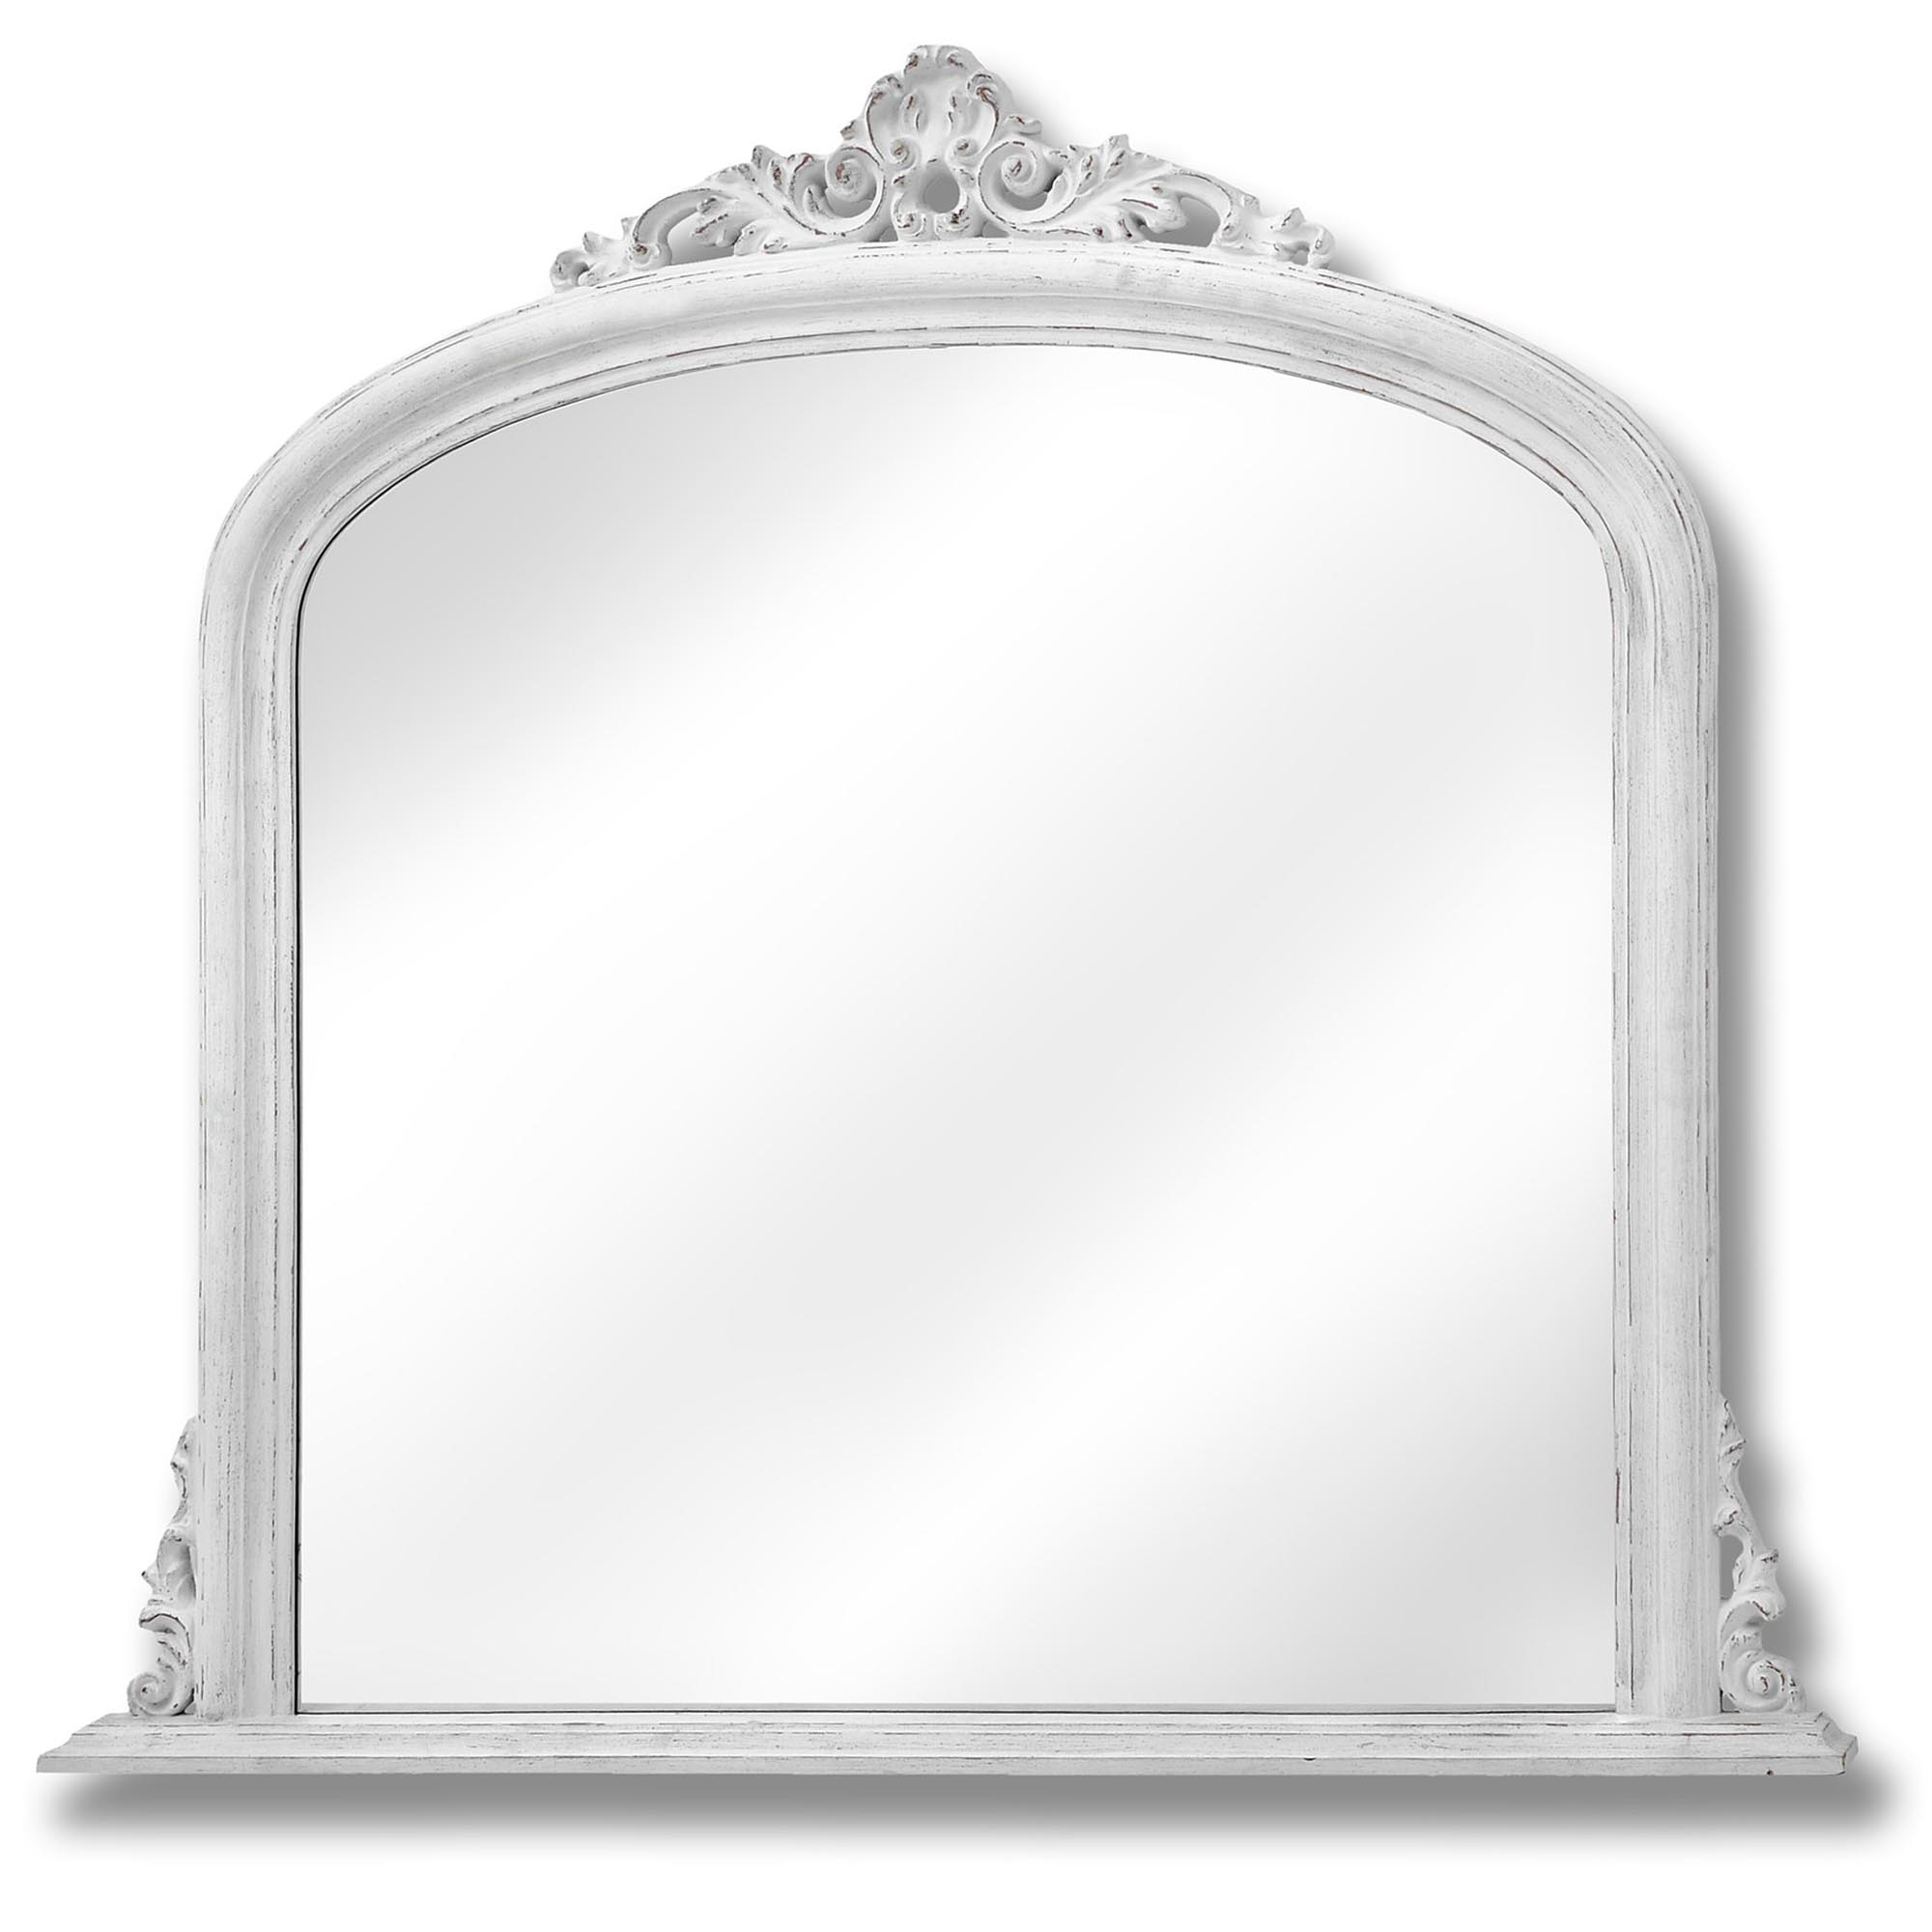 Antique French Style White Overmantel Mirror Homesdirect365